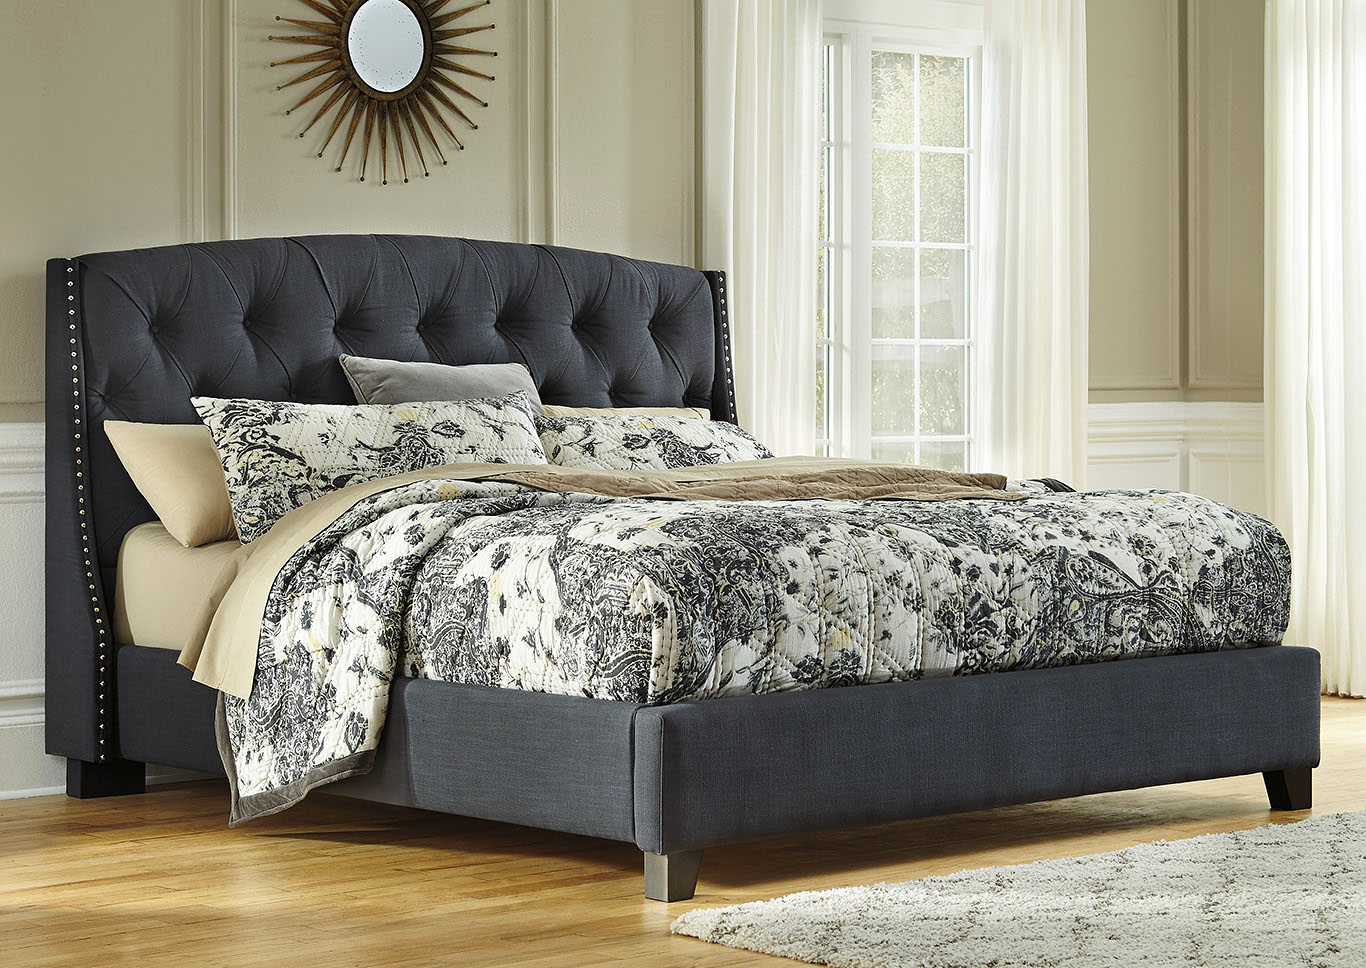 Kasidon Dark Gray King Upholstered Bed,Signature Design by Ashley